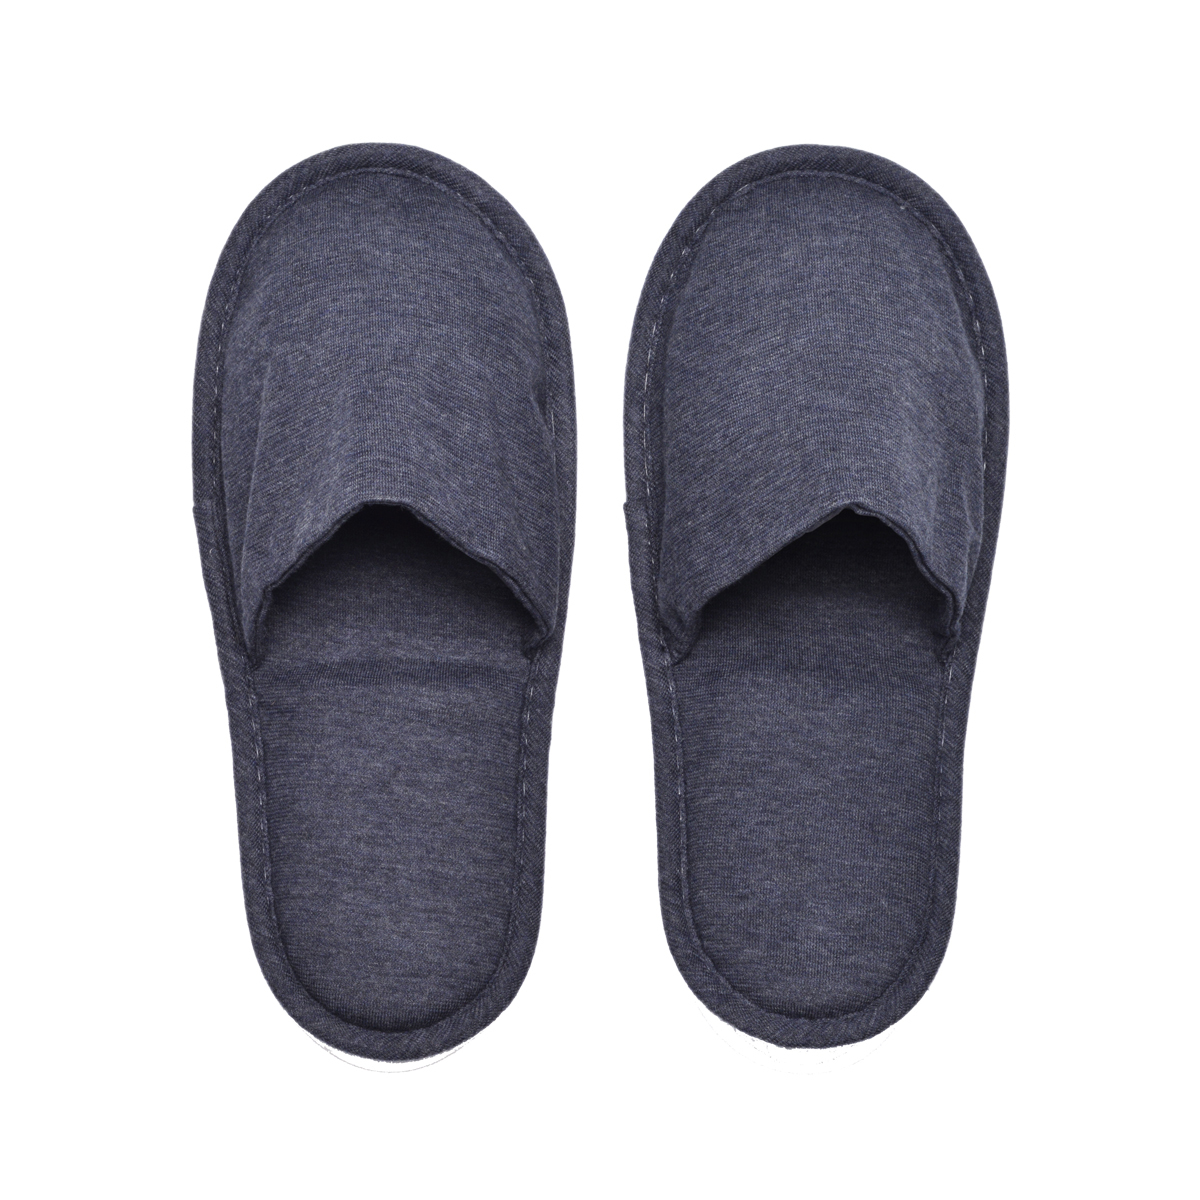 Basic Foldable Travel Slippers